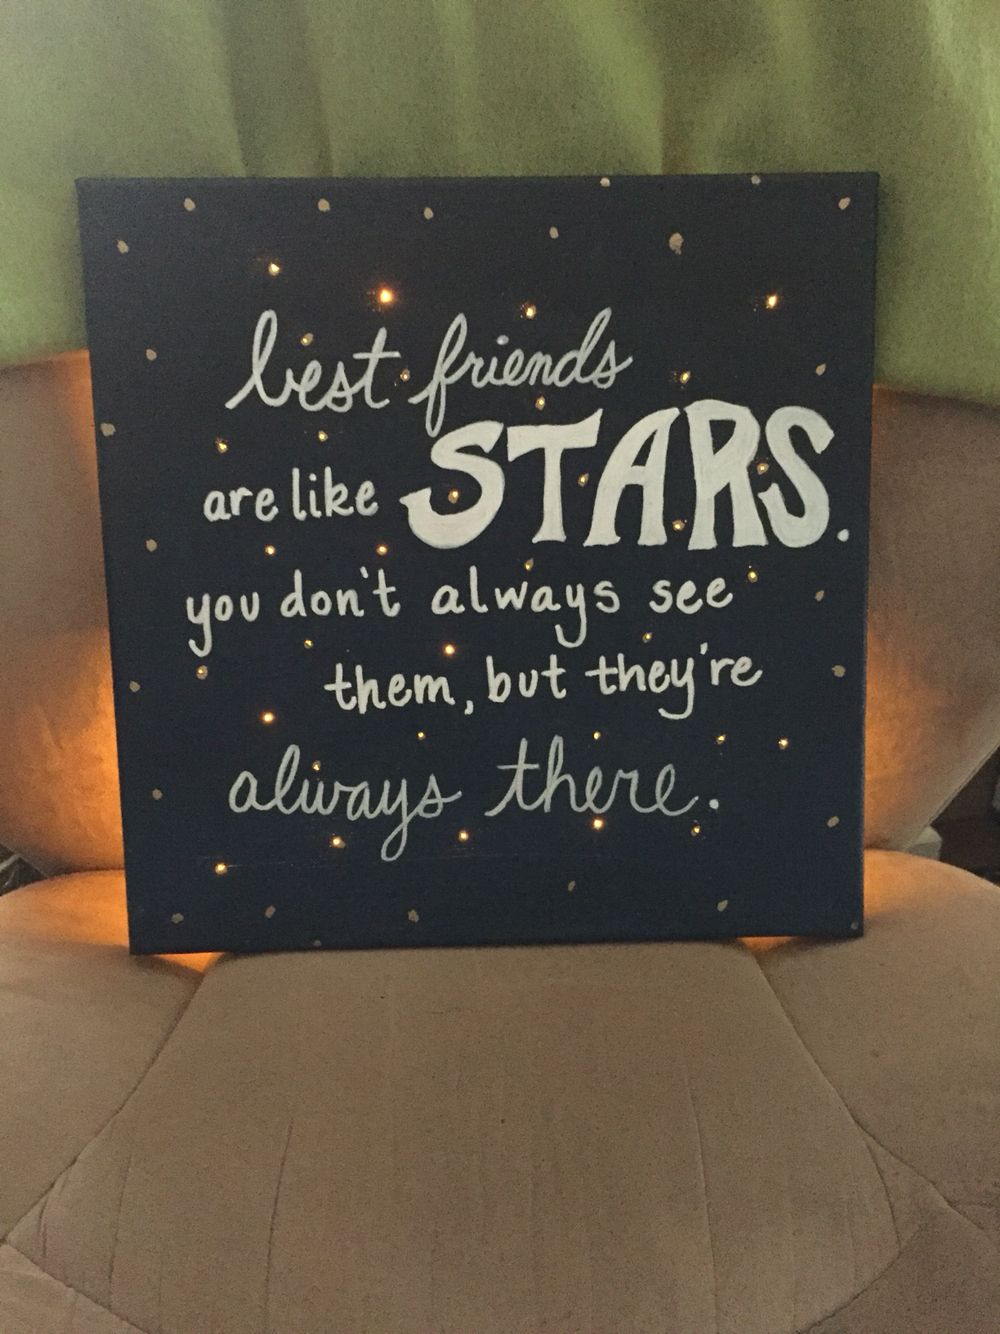 Made this sign for my best friend